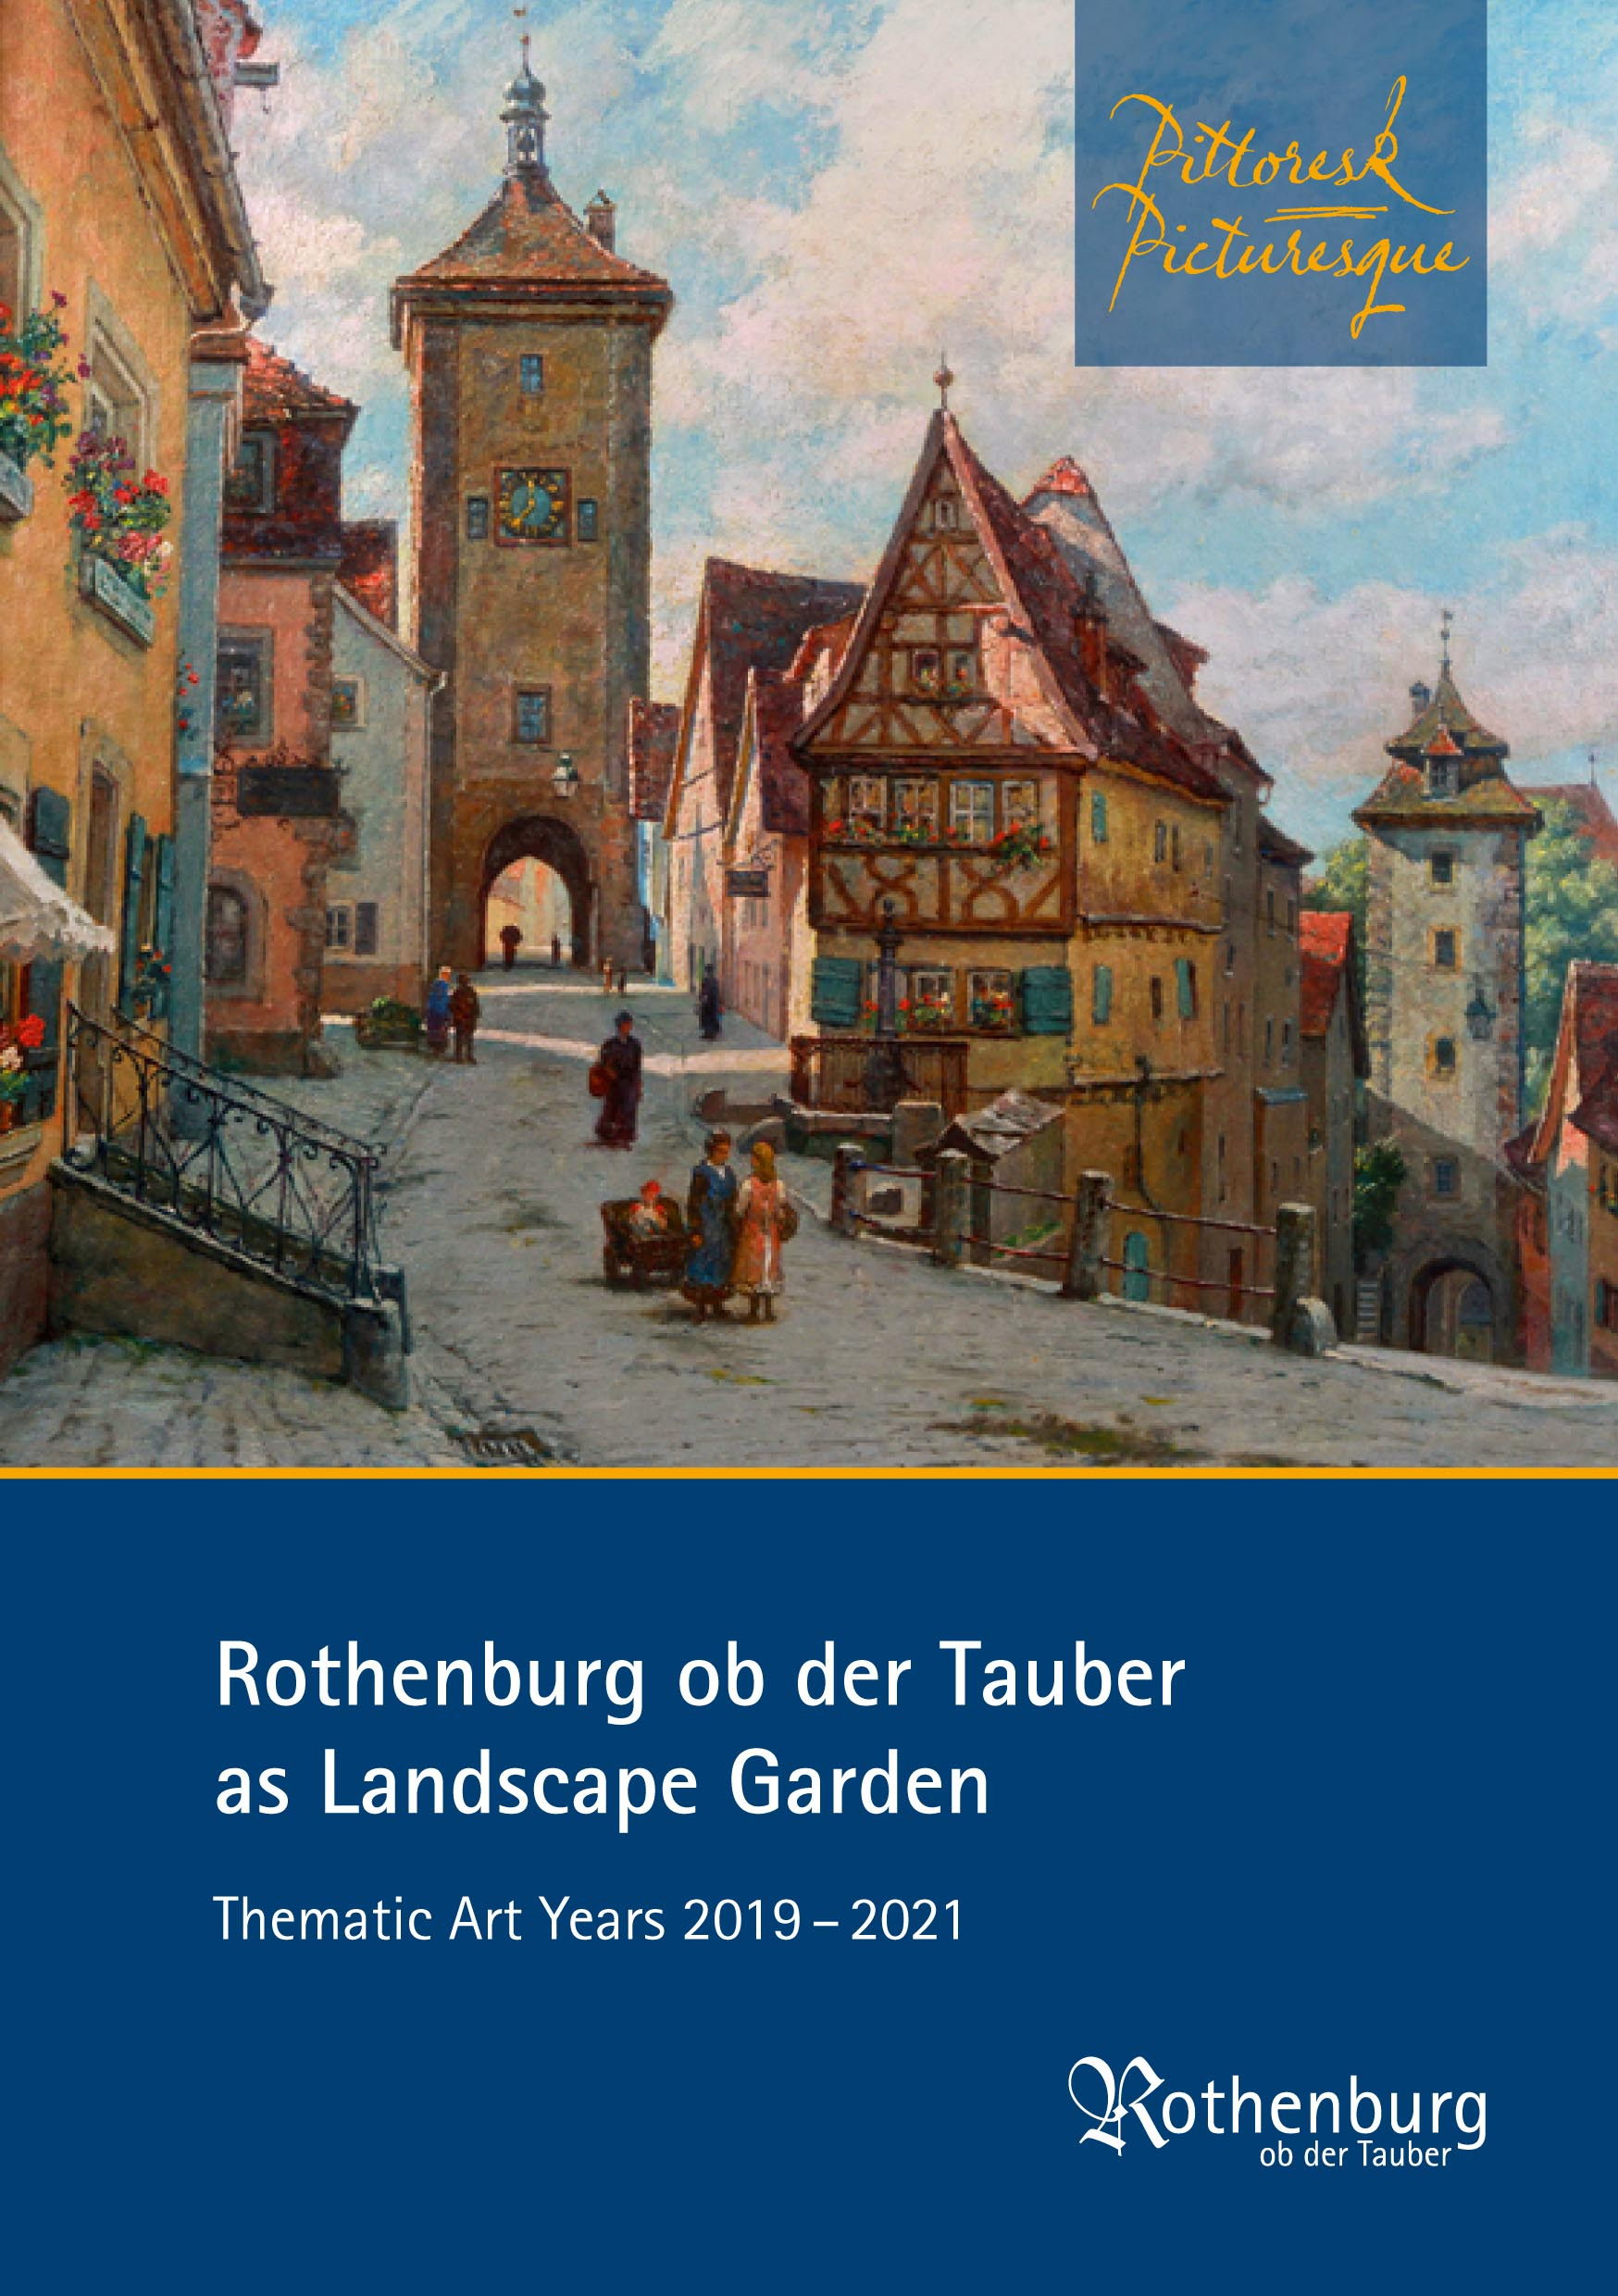 Rothenburg as Landscape Garden